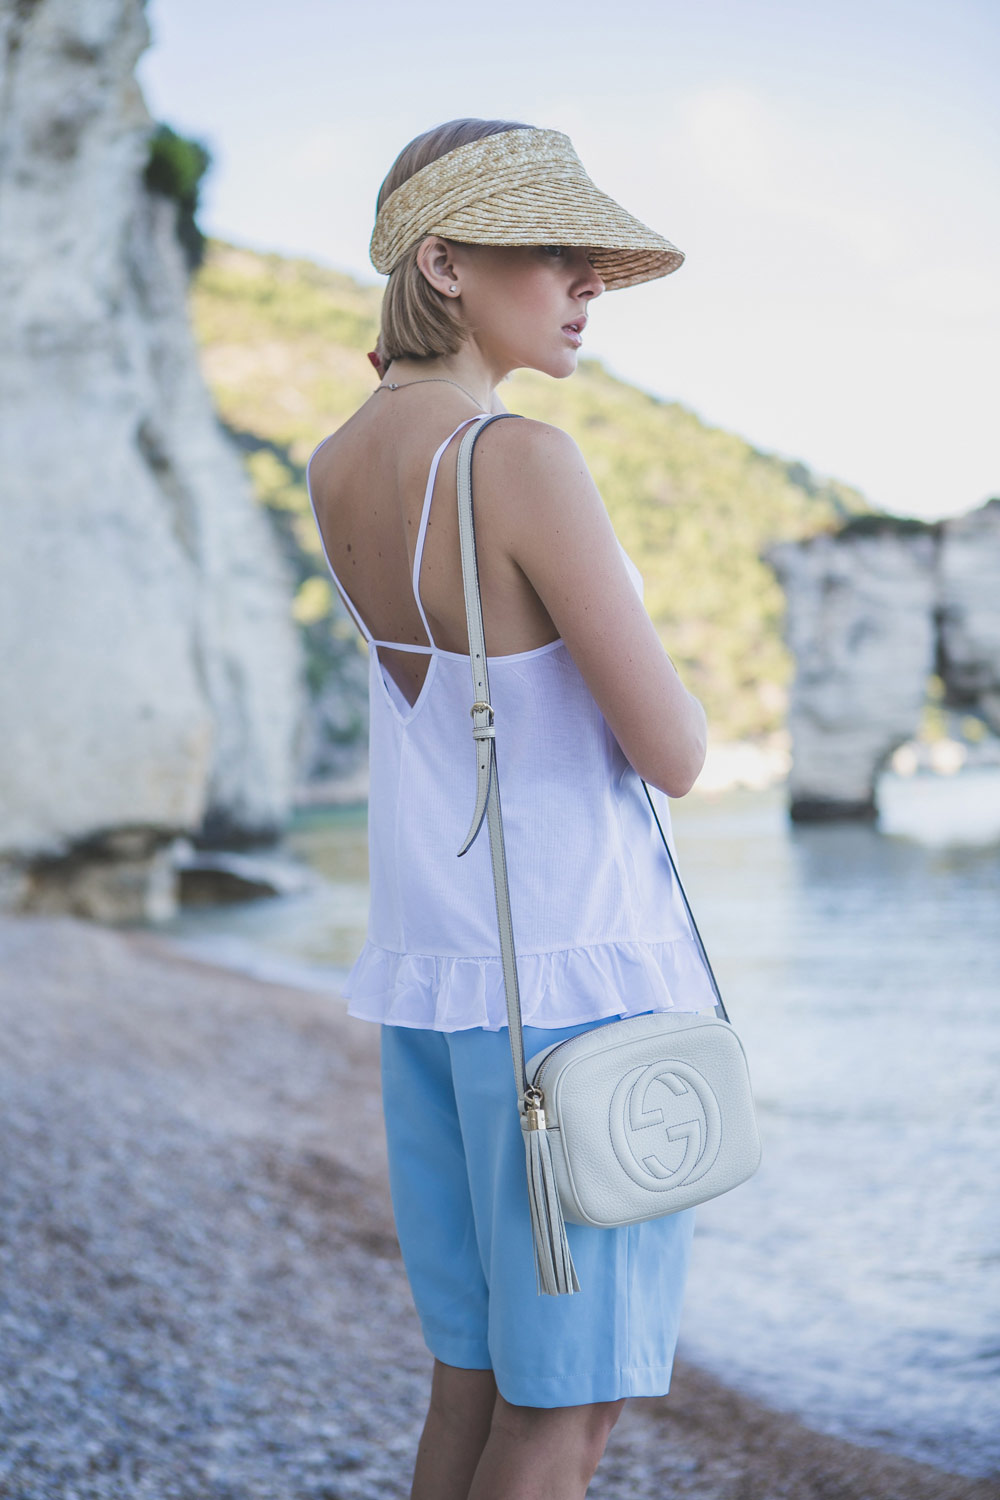 darya-kamalova-thecablook-fashion-lifestyle-blogger-from-thecablook-com-in-puglia-gargano-baia-dei-faraglioni-allegro-italia-in-asos-visor-and-blue-frontrowshop-shorts-with-gucci-disco-soho-bag-1577